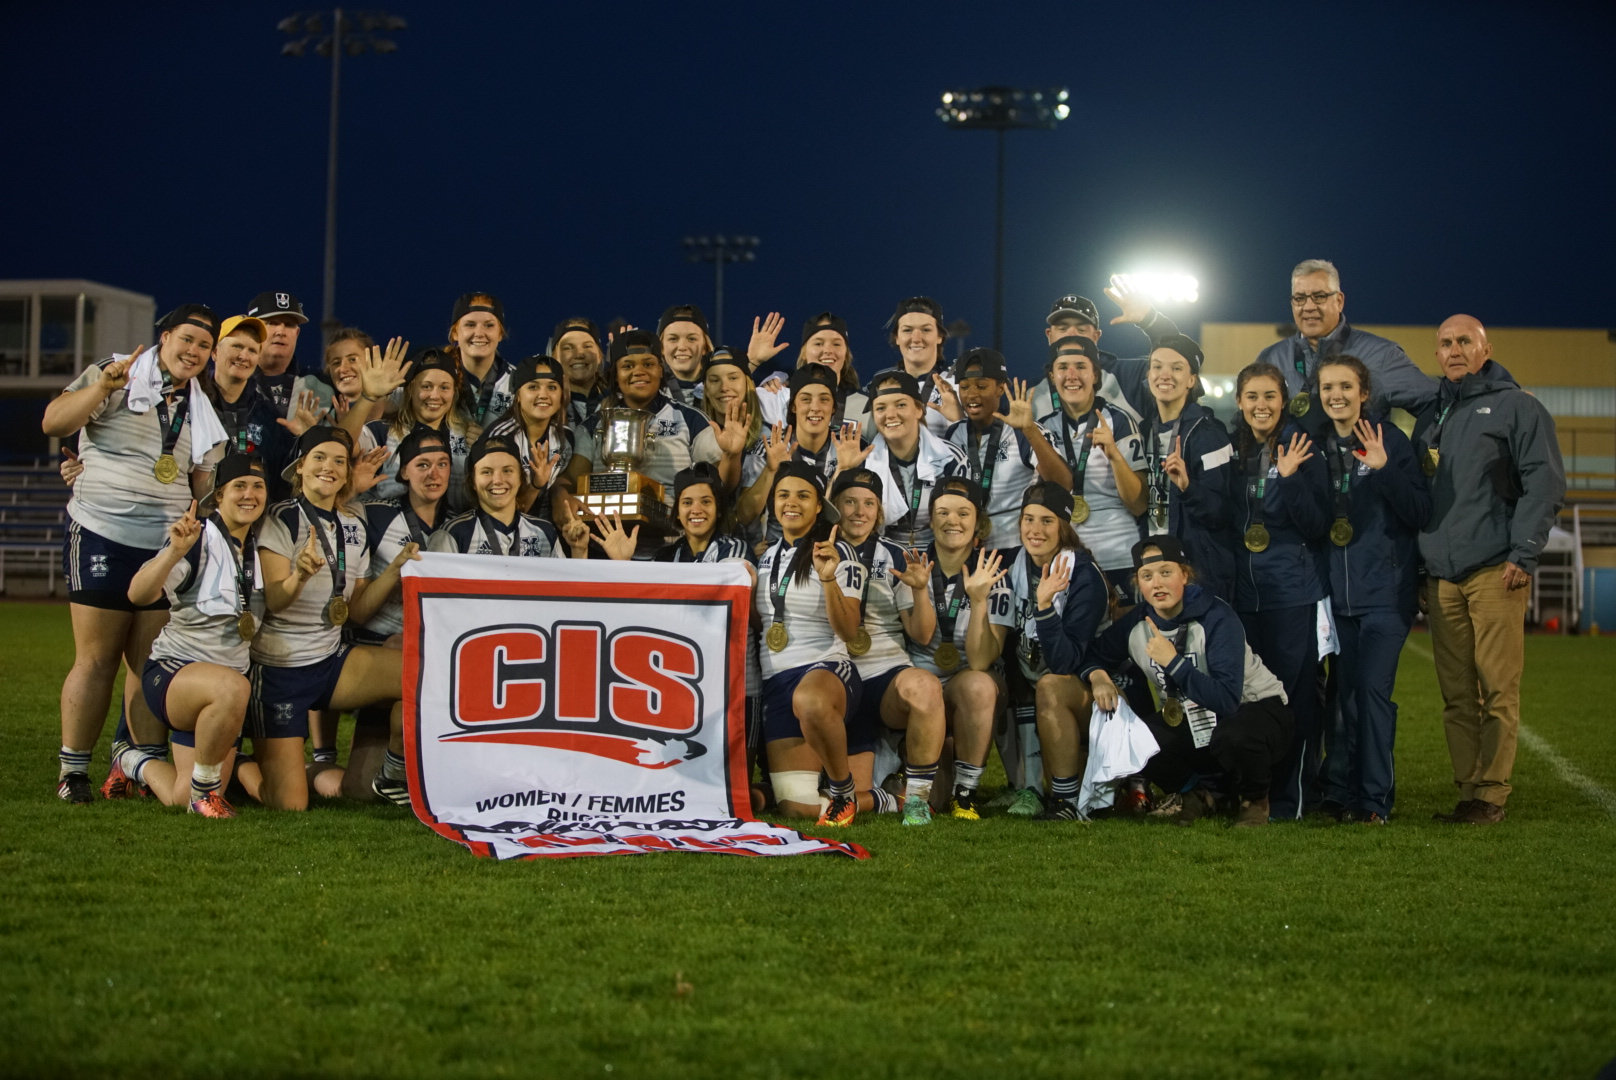 2016 Women's Rugby Championship: StFX captures fifth national title, McDaid named championship MVP